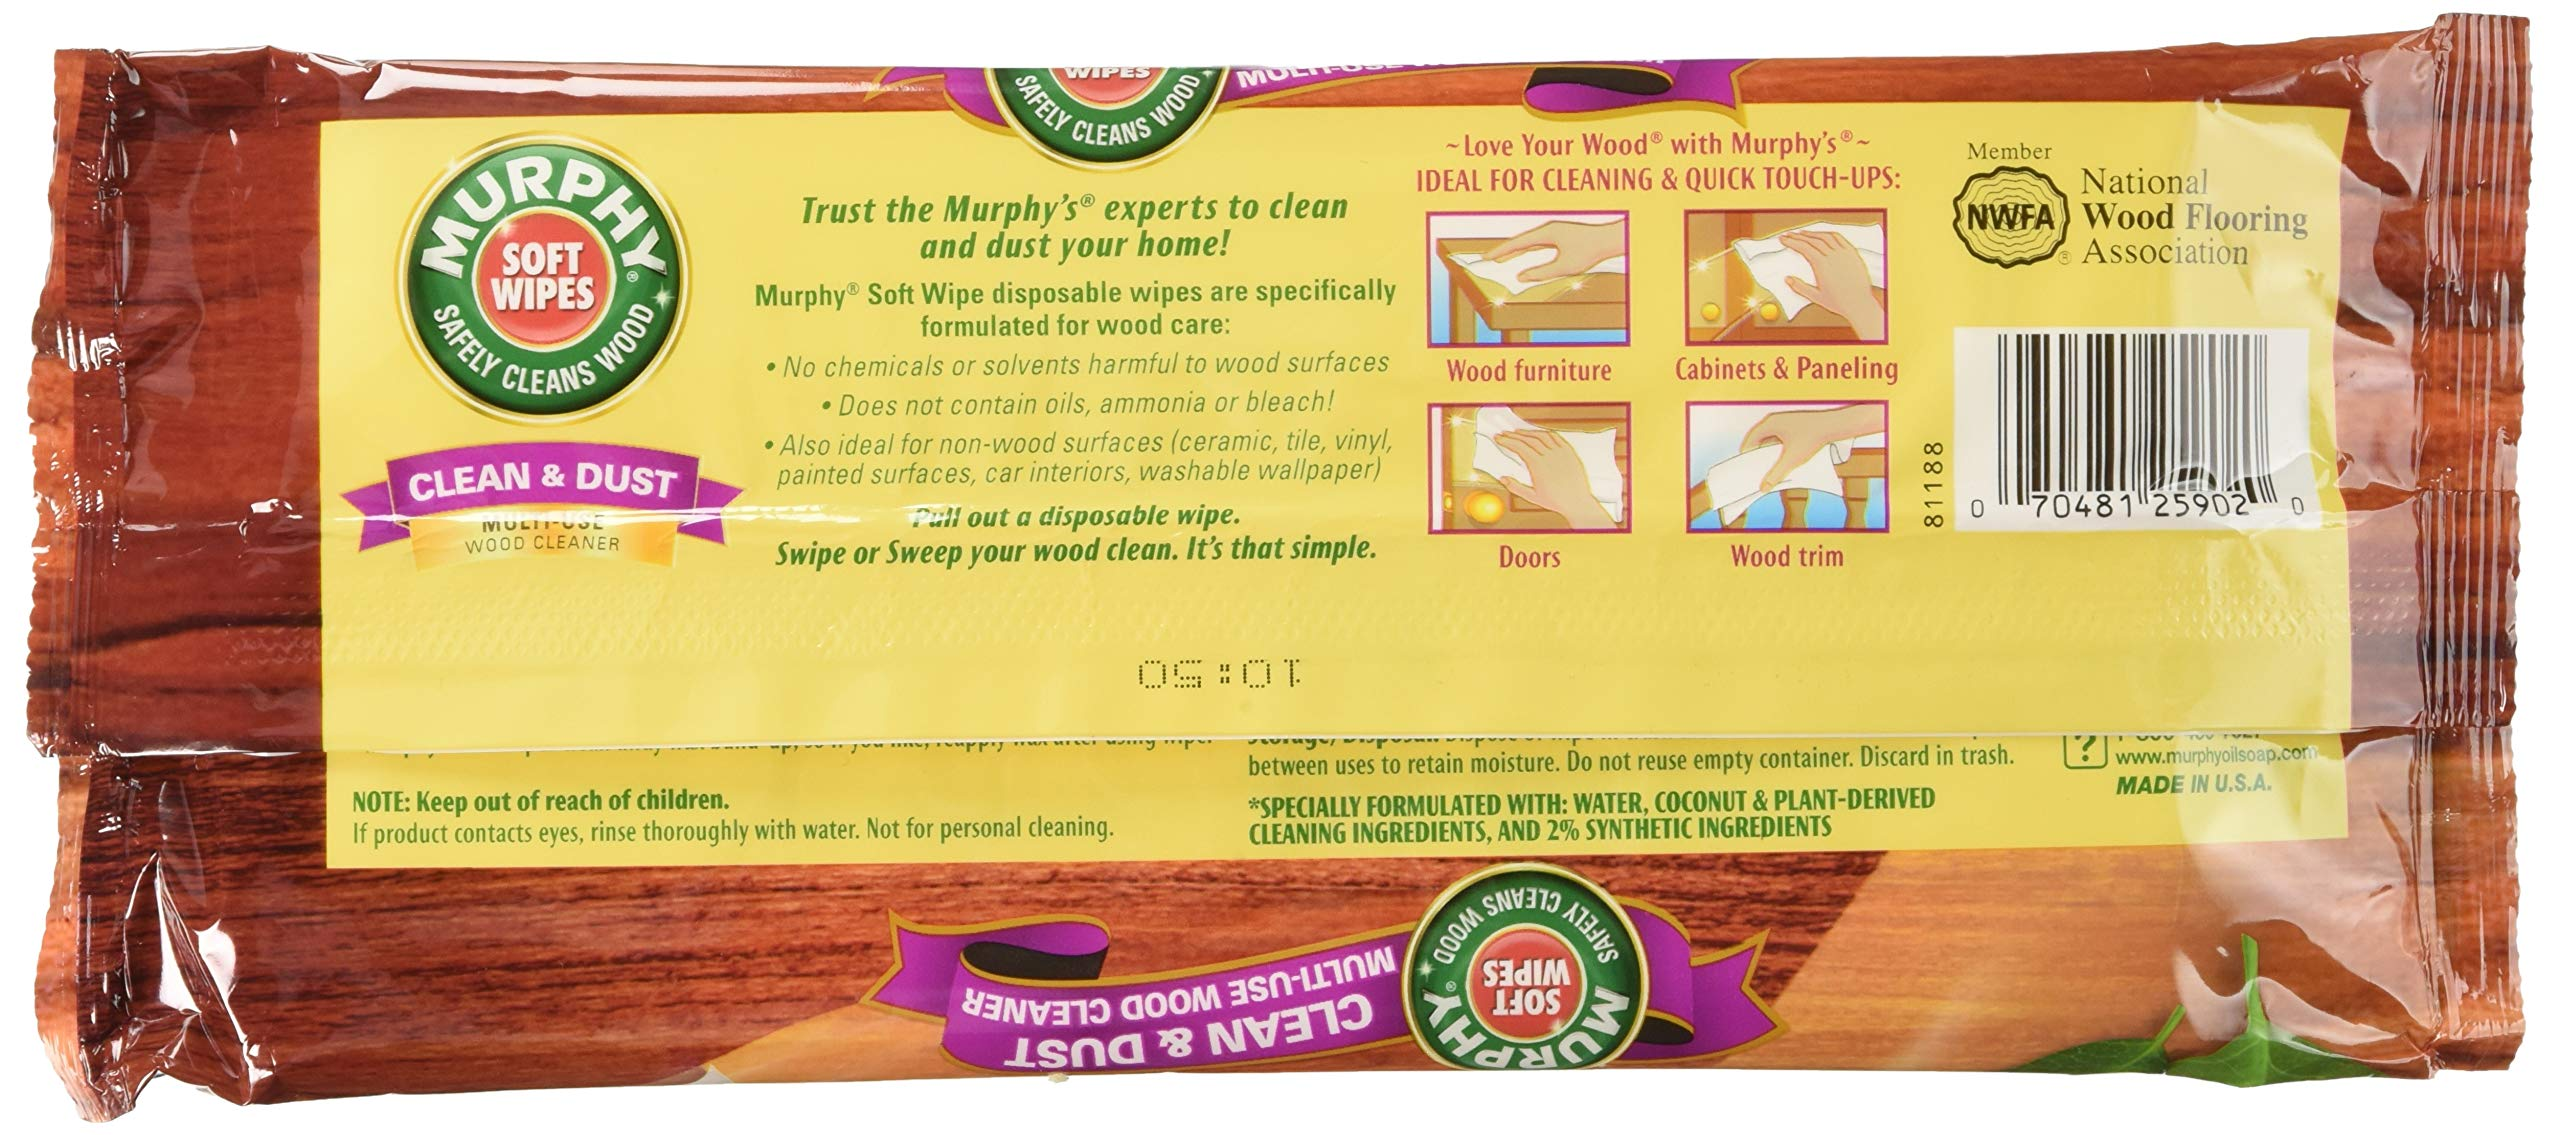 Murphy Oil Soap Soft Wipes, Wet, Disposable, Large Size, 18 Count (Pack of 3) by Murphy (Image #2)